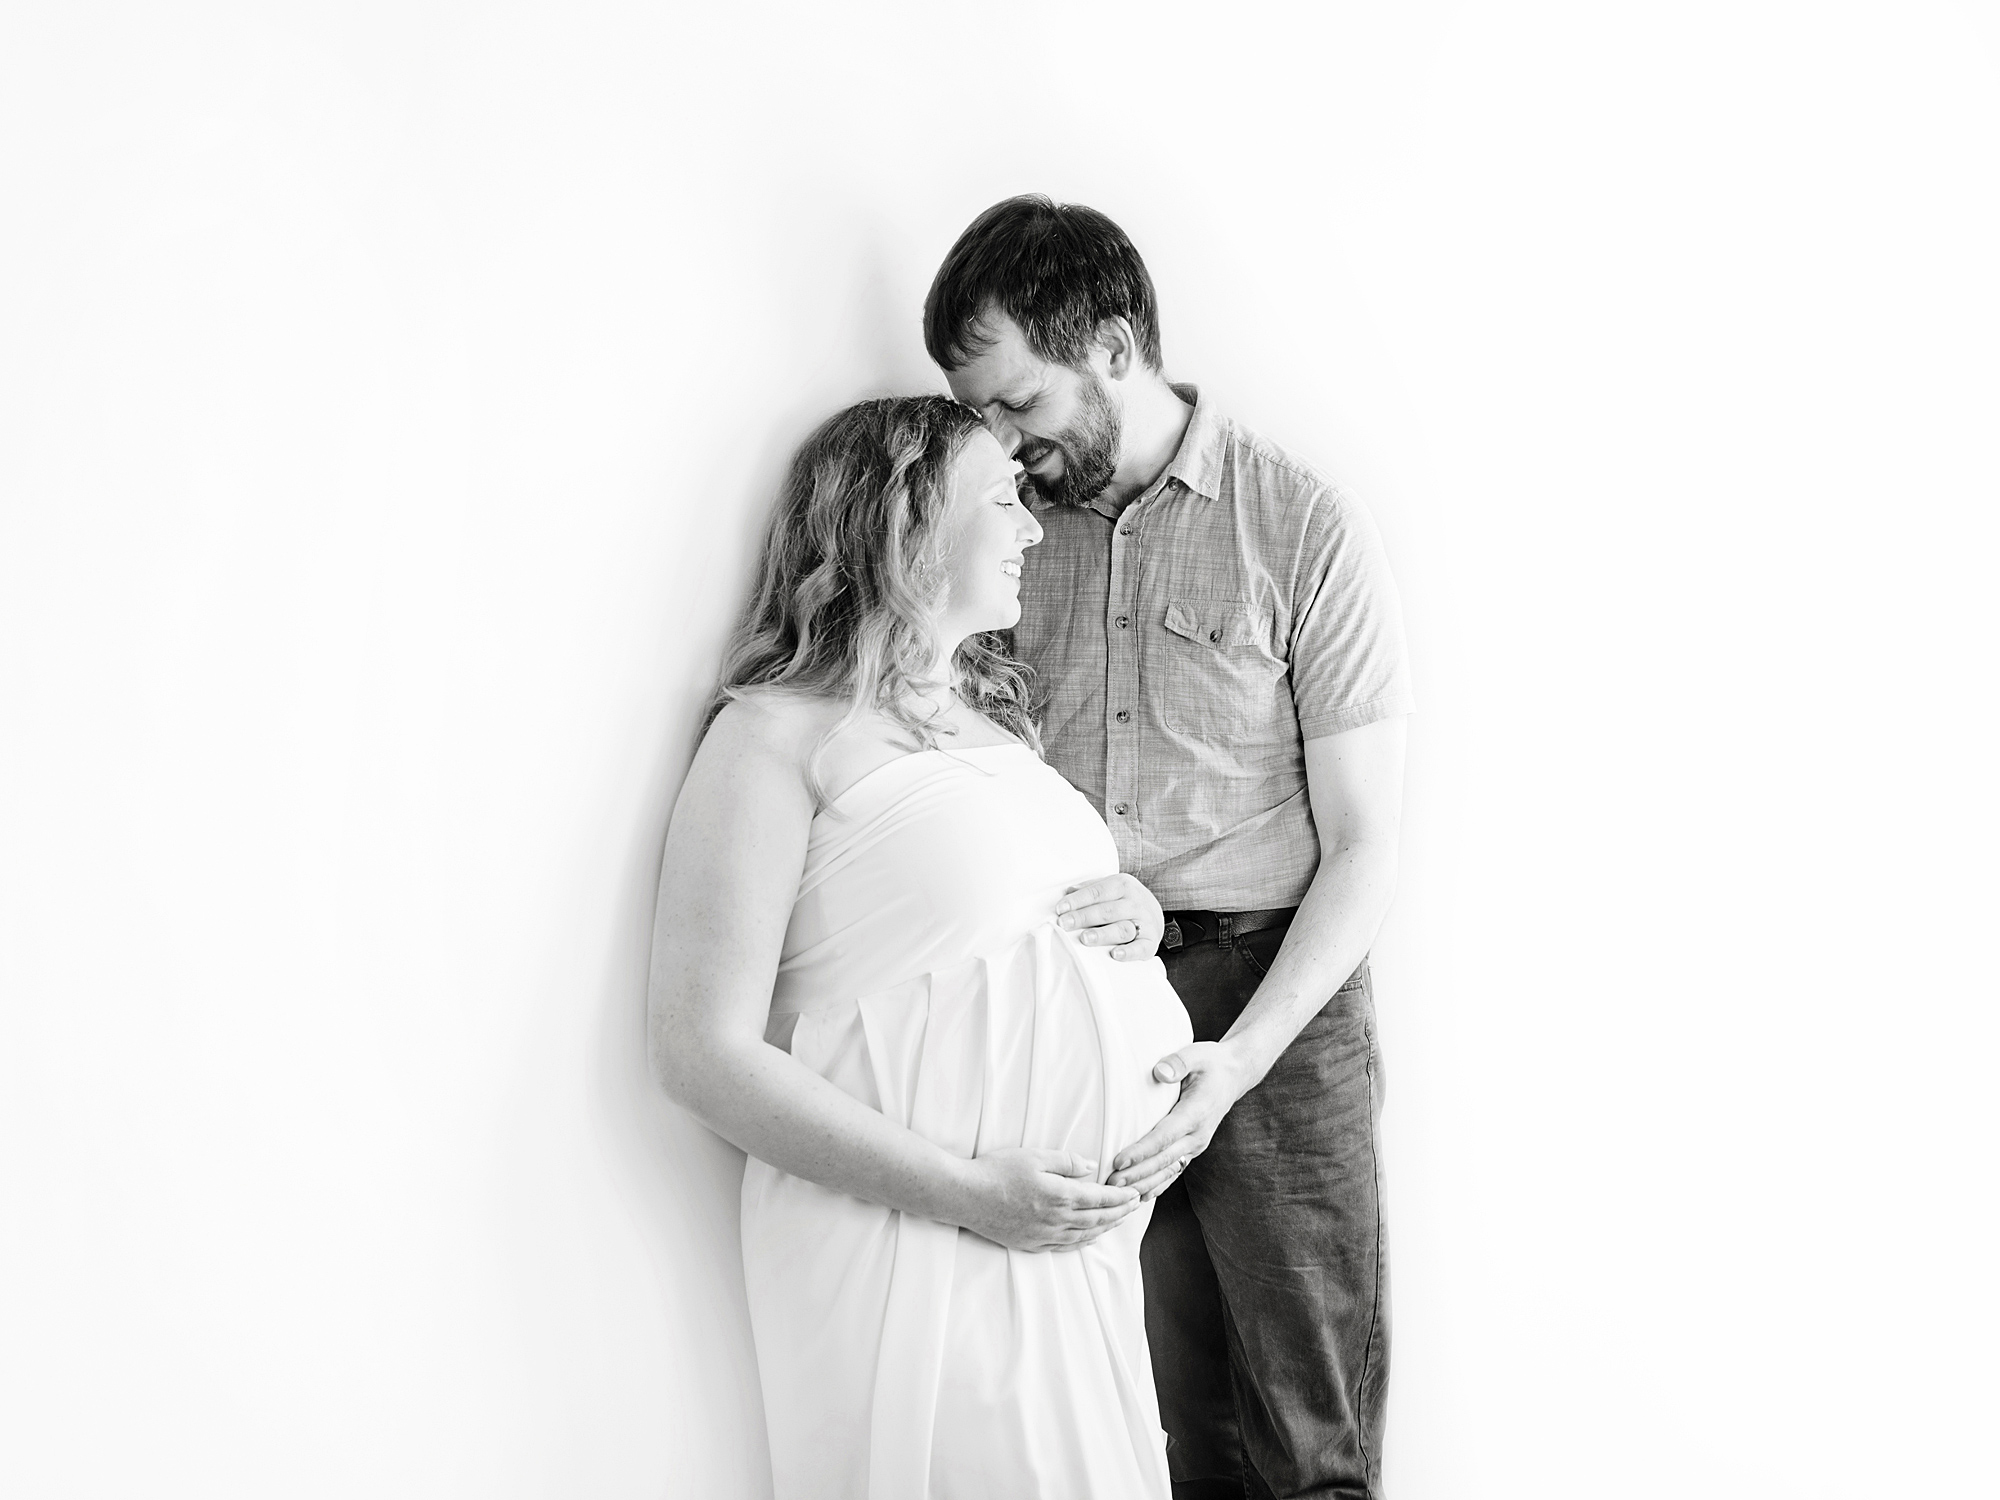 pregnancy maternity photography edinburgh midlothian with partner